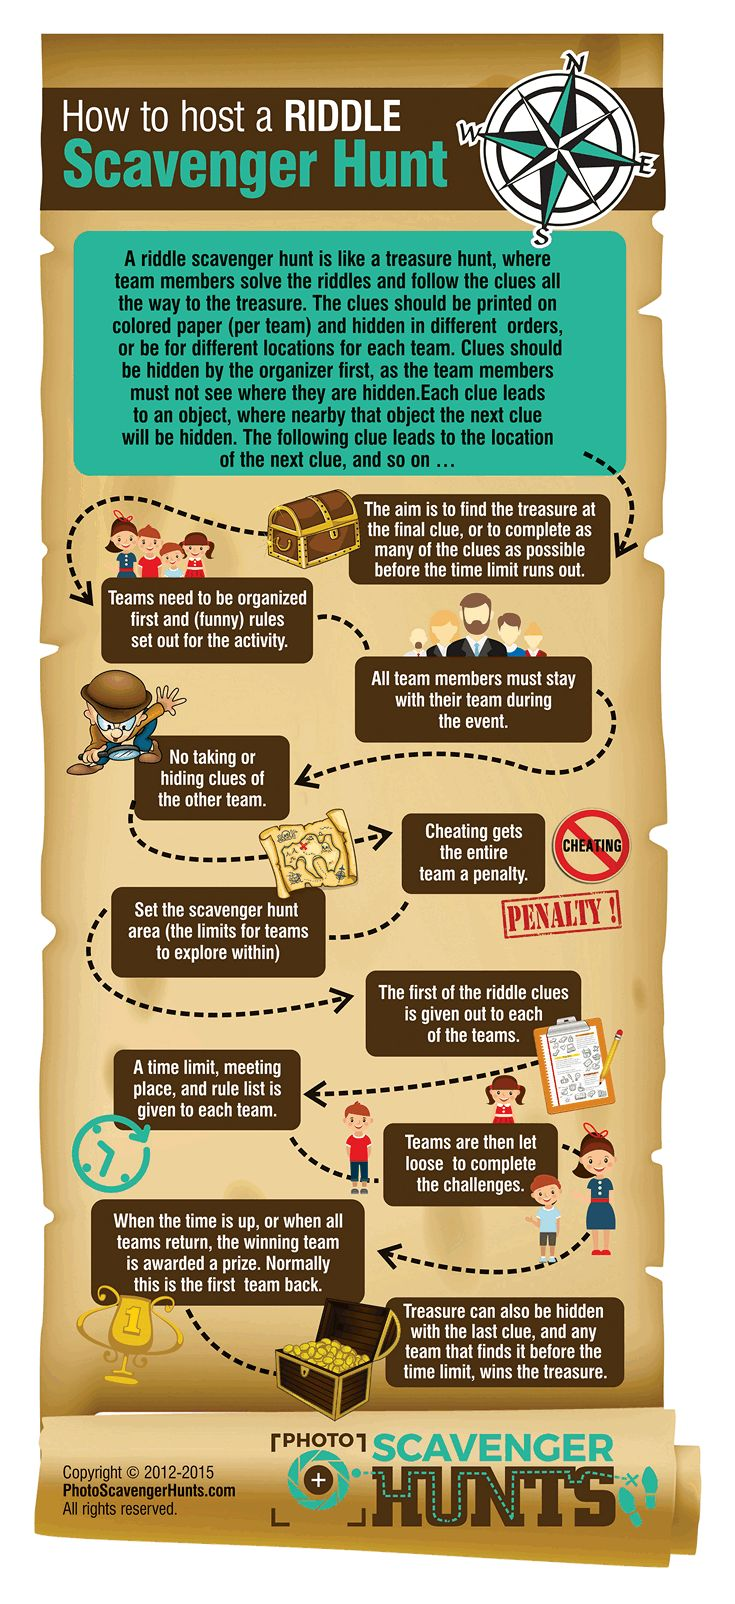 Ridlle Scavenger Hunt Rules Infographic                                                                                                                                                                                 More